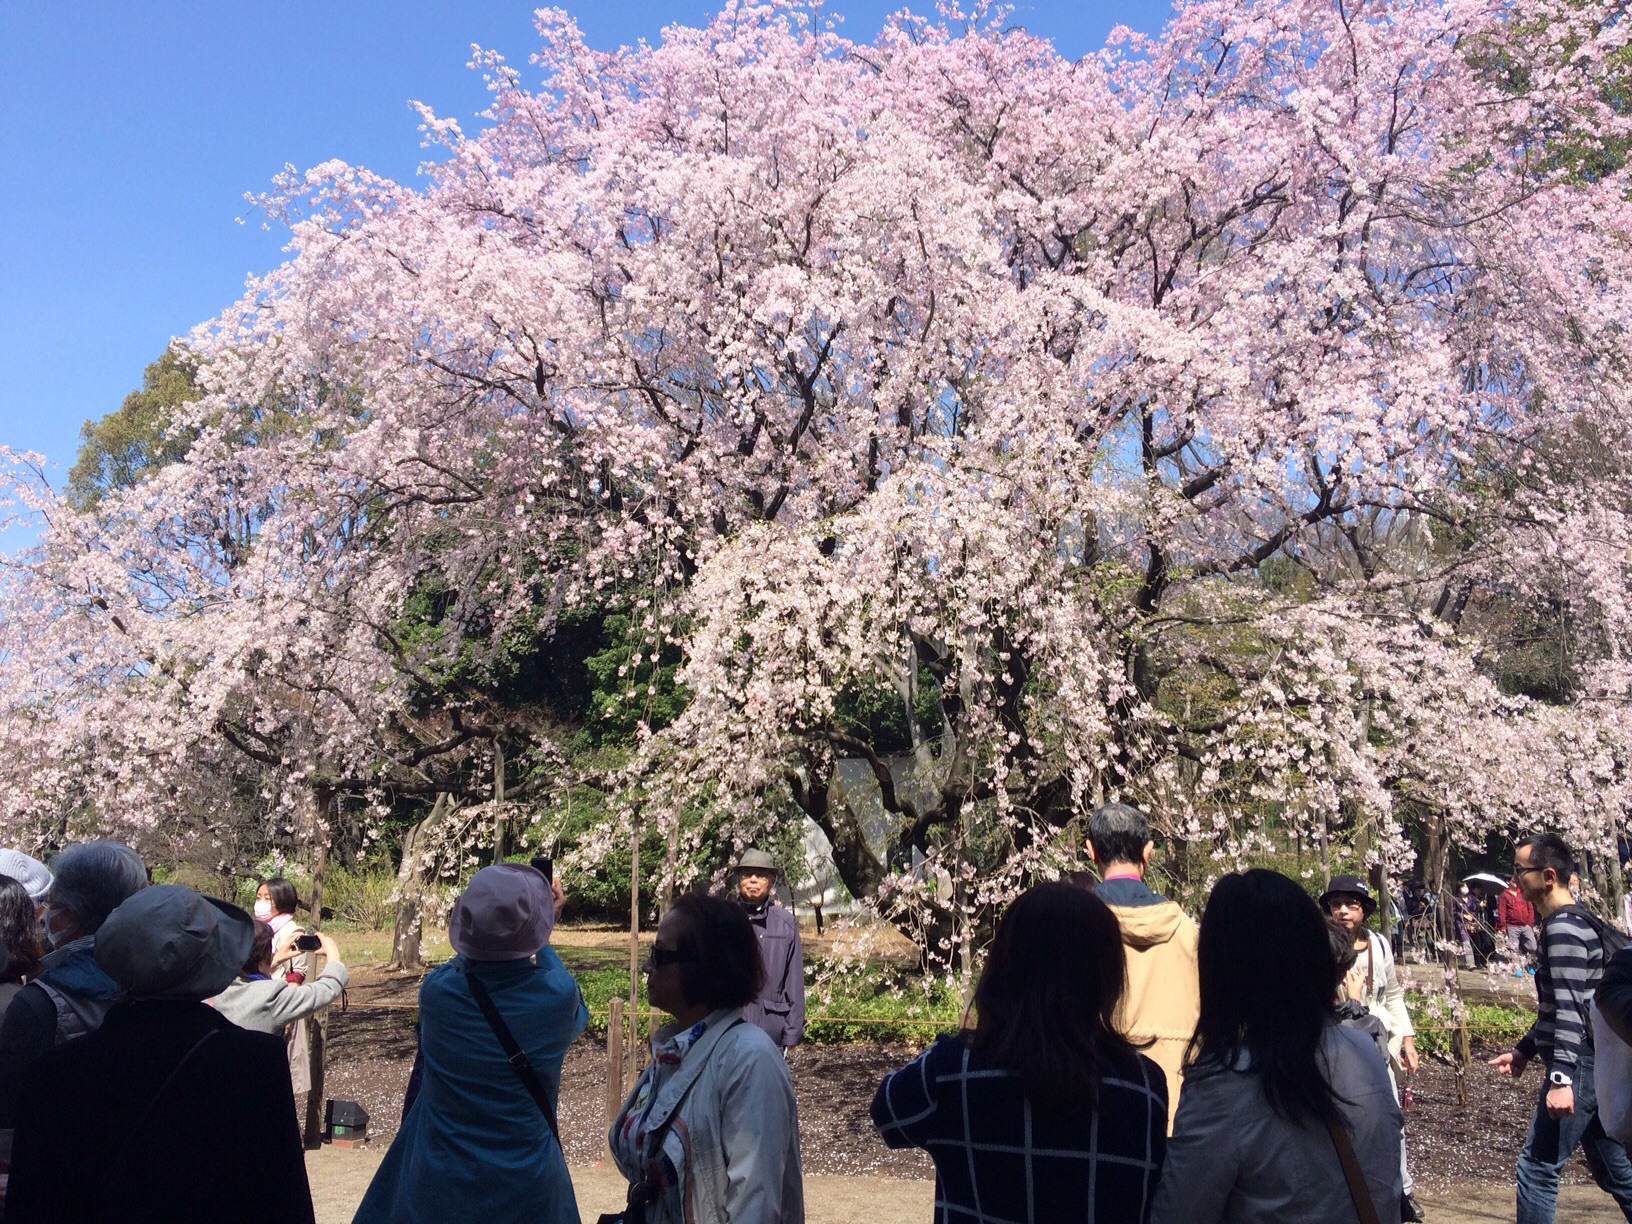 Blossom woos the crowds